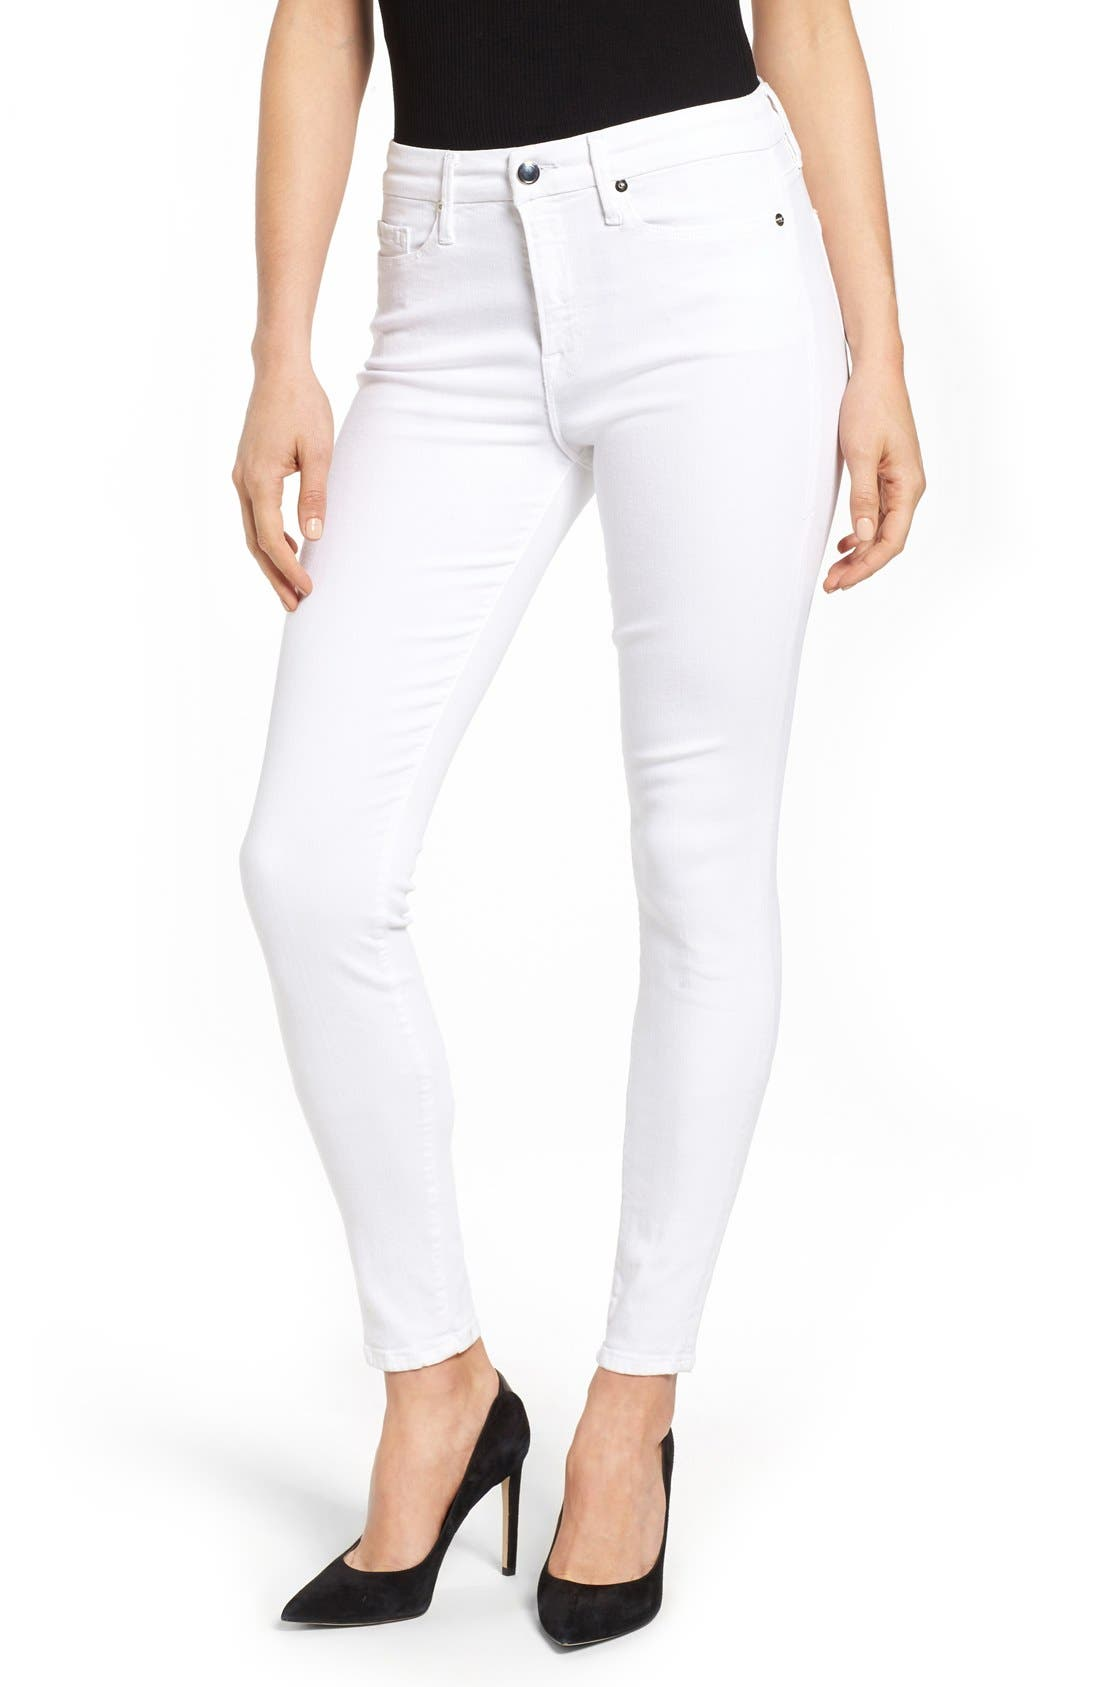 Alternate Image 1 Selected - Good American Good Legs High Rise Skinny Jeans (White 001) (Extended Sizes)